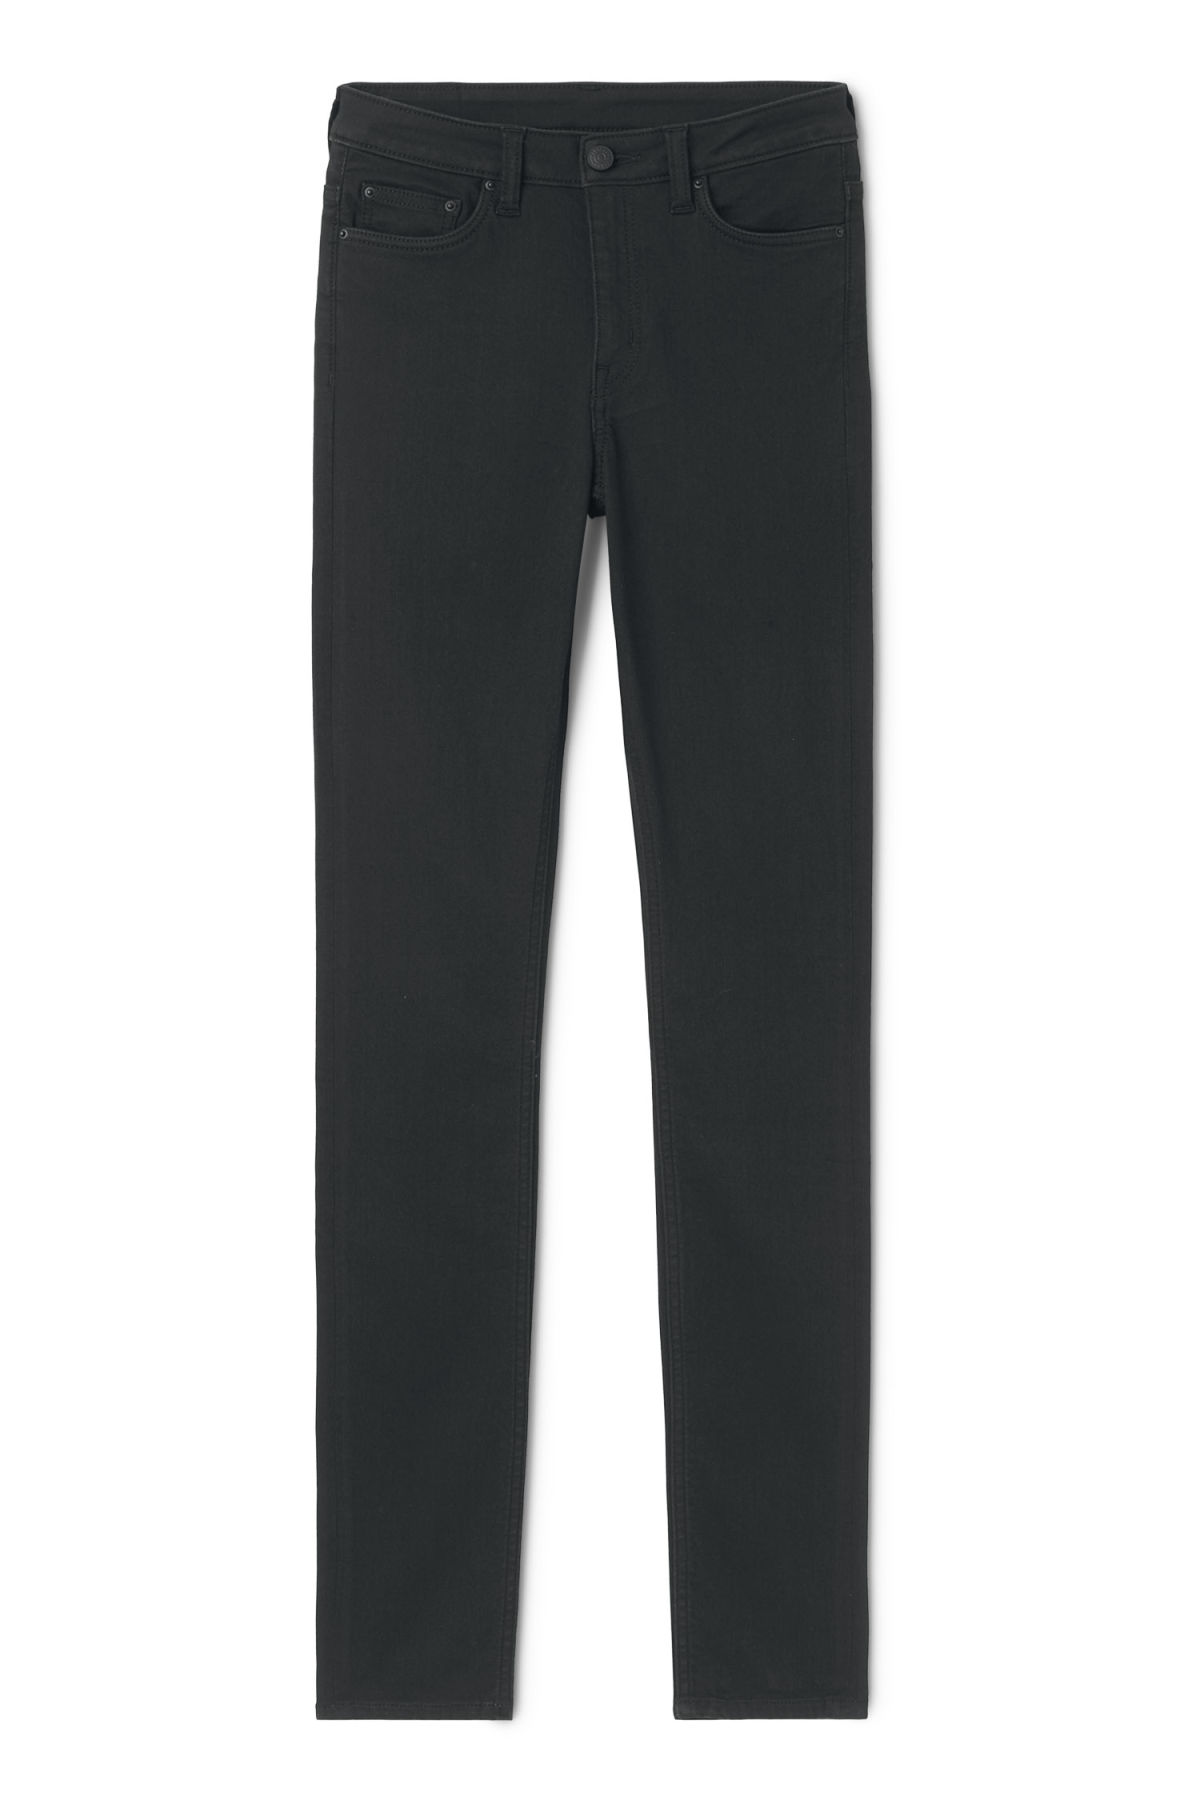 Front image of Weekday body elastic black jeans in black